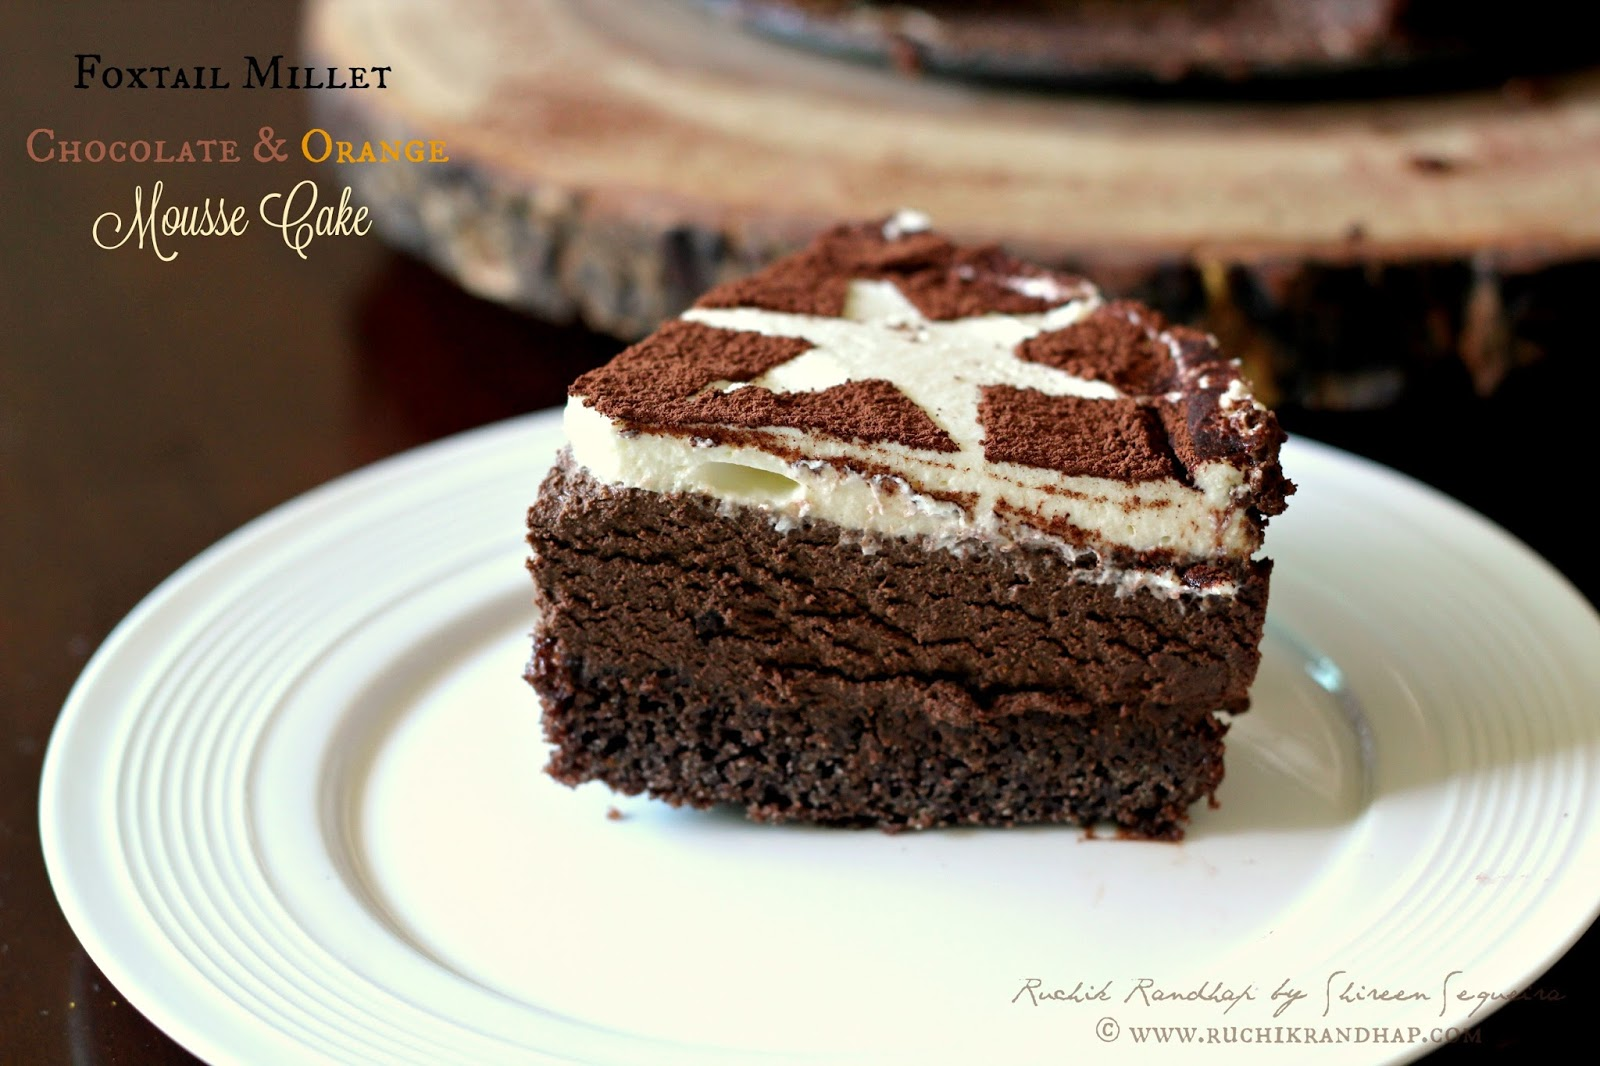 Chocolate Cake Recipe In Kannada: Foxtail Millet, Chocolate & Orange Mousse Cake